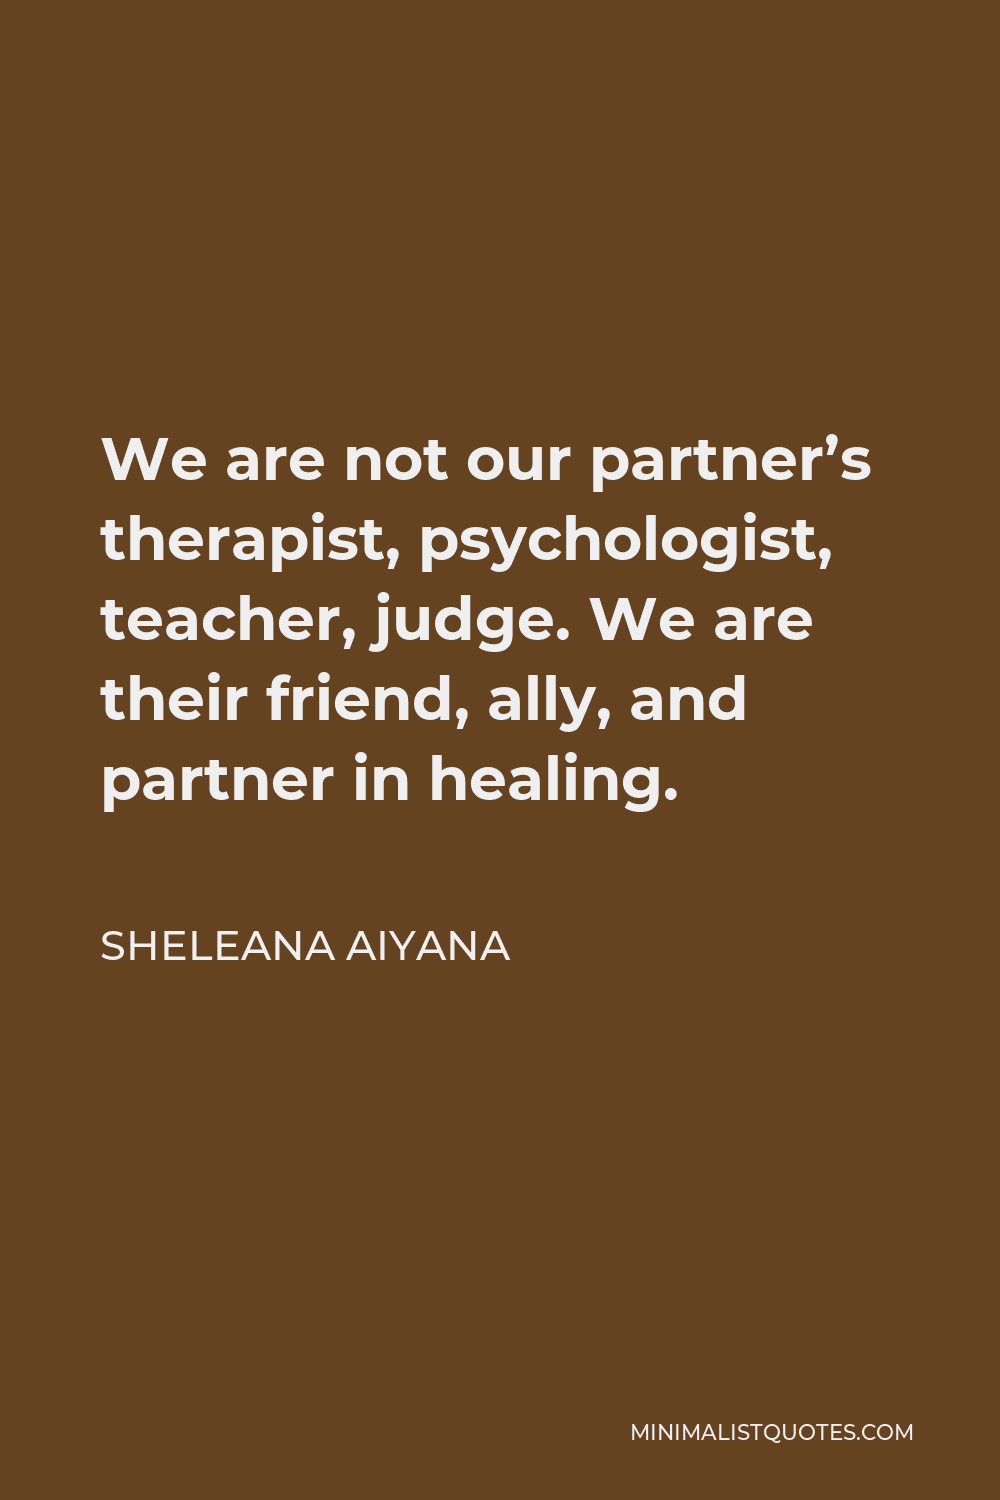 Sheleana Aiyana Quote - We are not our partner's therapist, psychologist, teacher, judge. We are their friend, ally, and partner in healing.